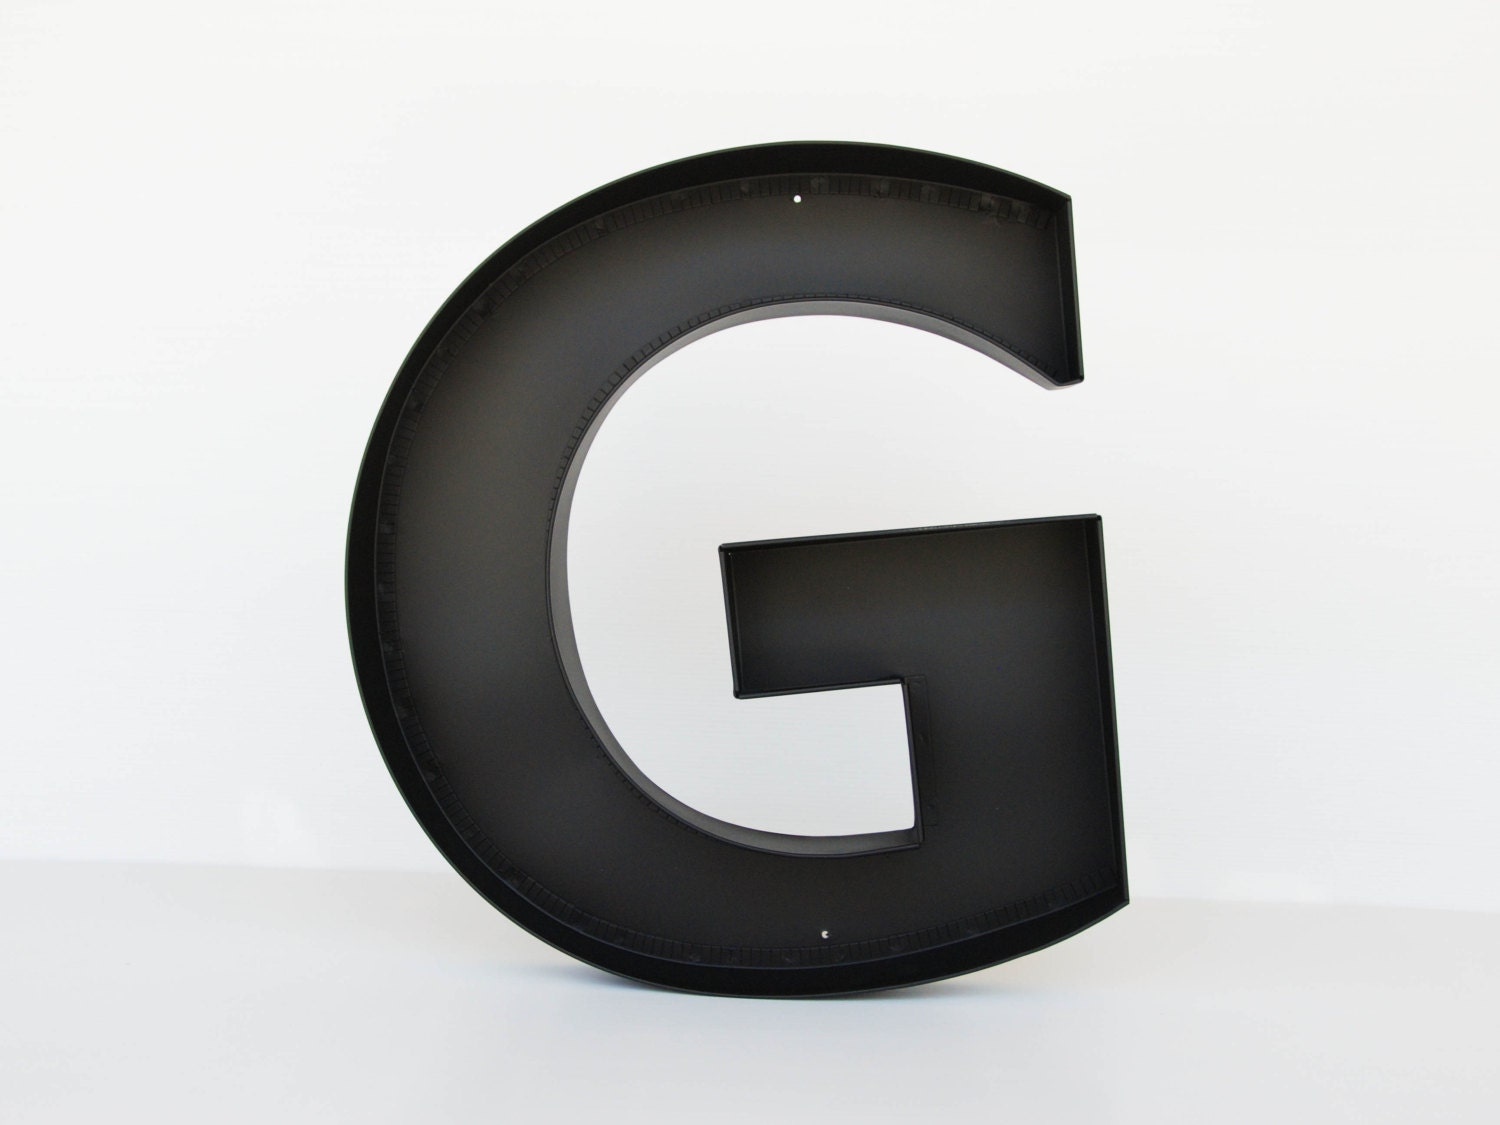 Wall Decor Metal Numbers : Metal letters g sign letter wall decor large by